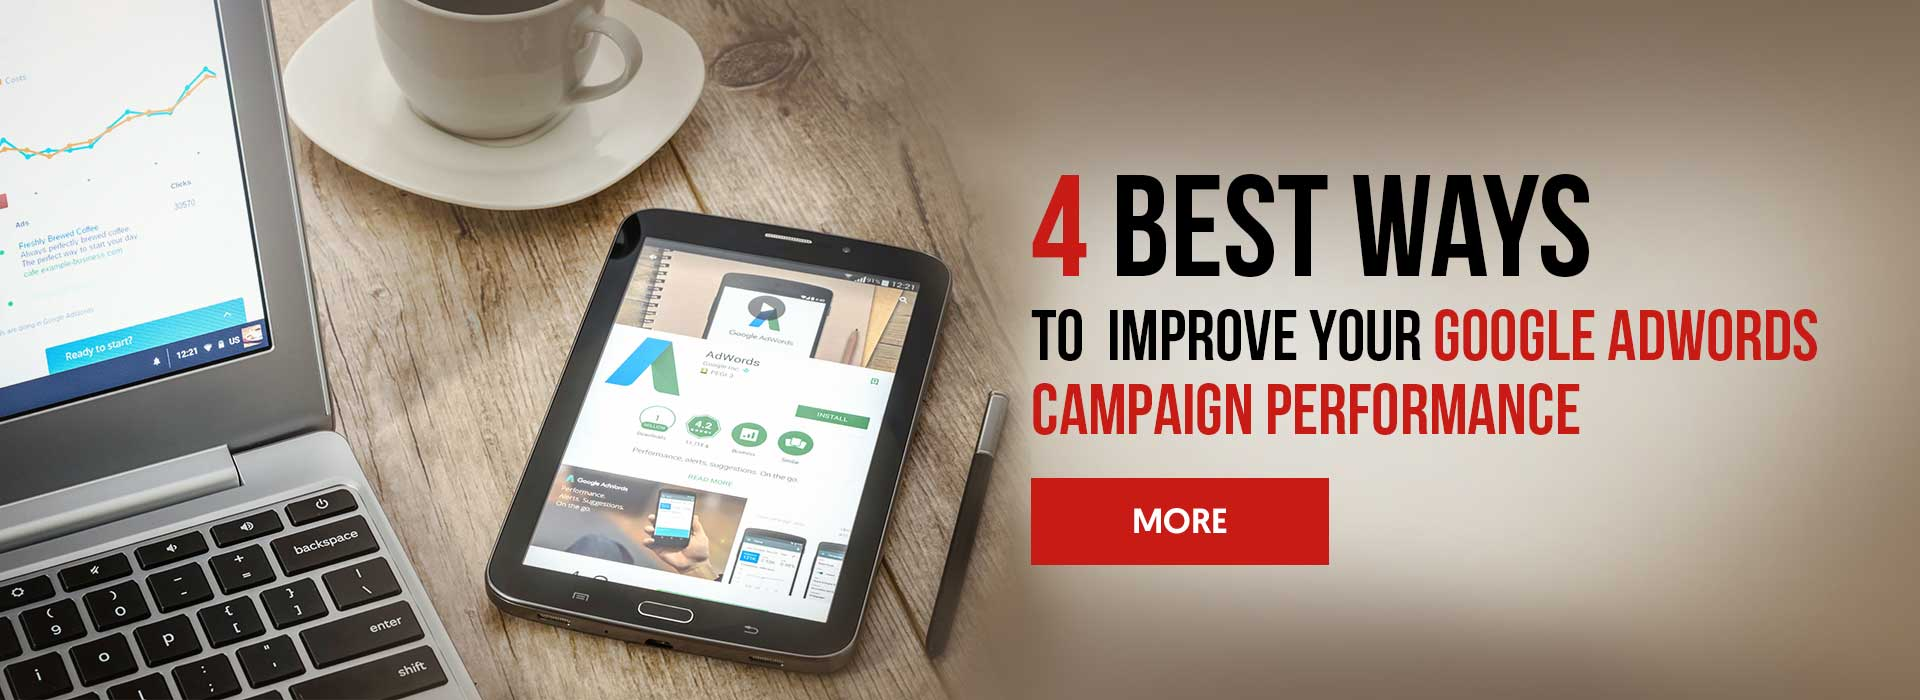 4 Best Ways to Improve Your Google AdWords Campaign Performance